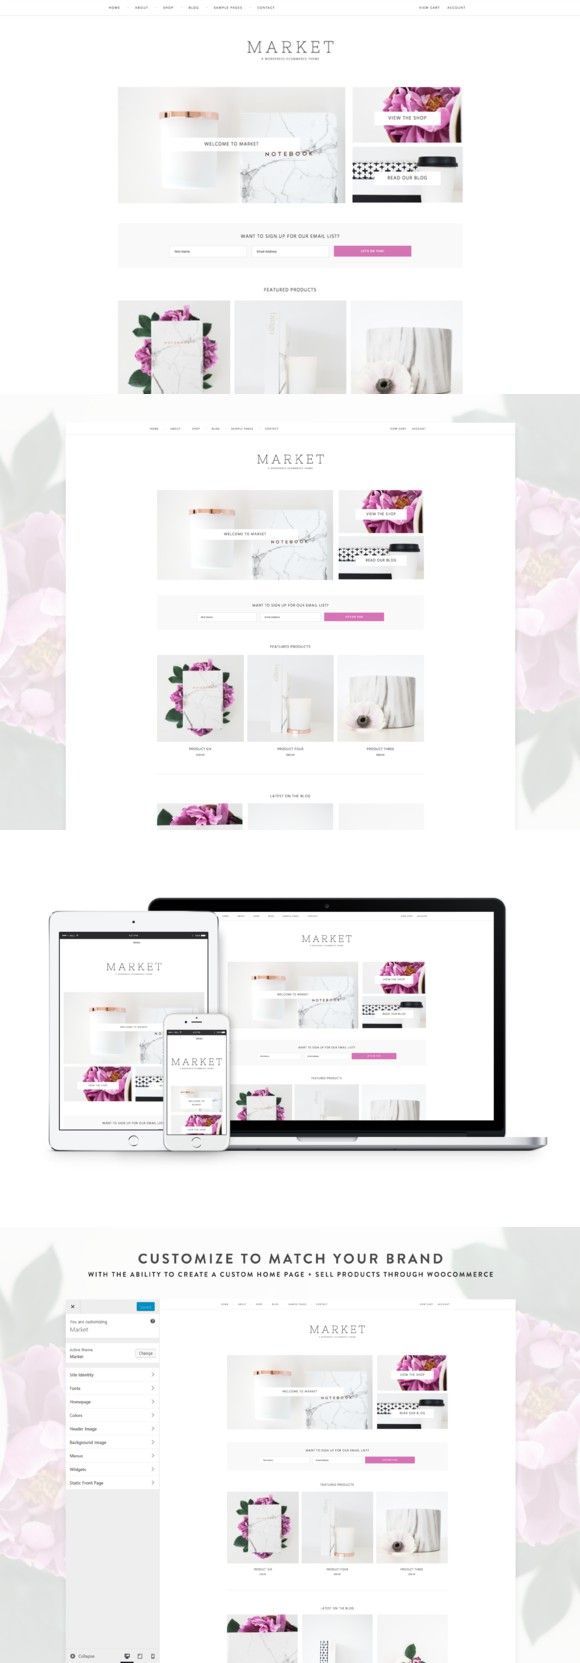 64 best images about Tumblr Themes on Pinterest | Timeline ...